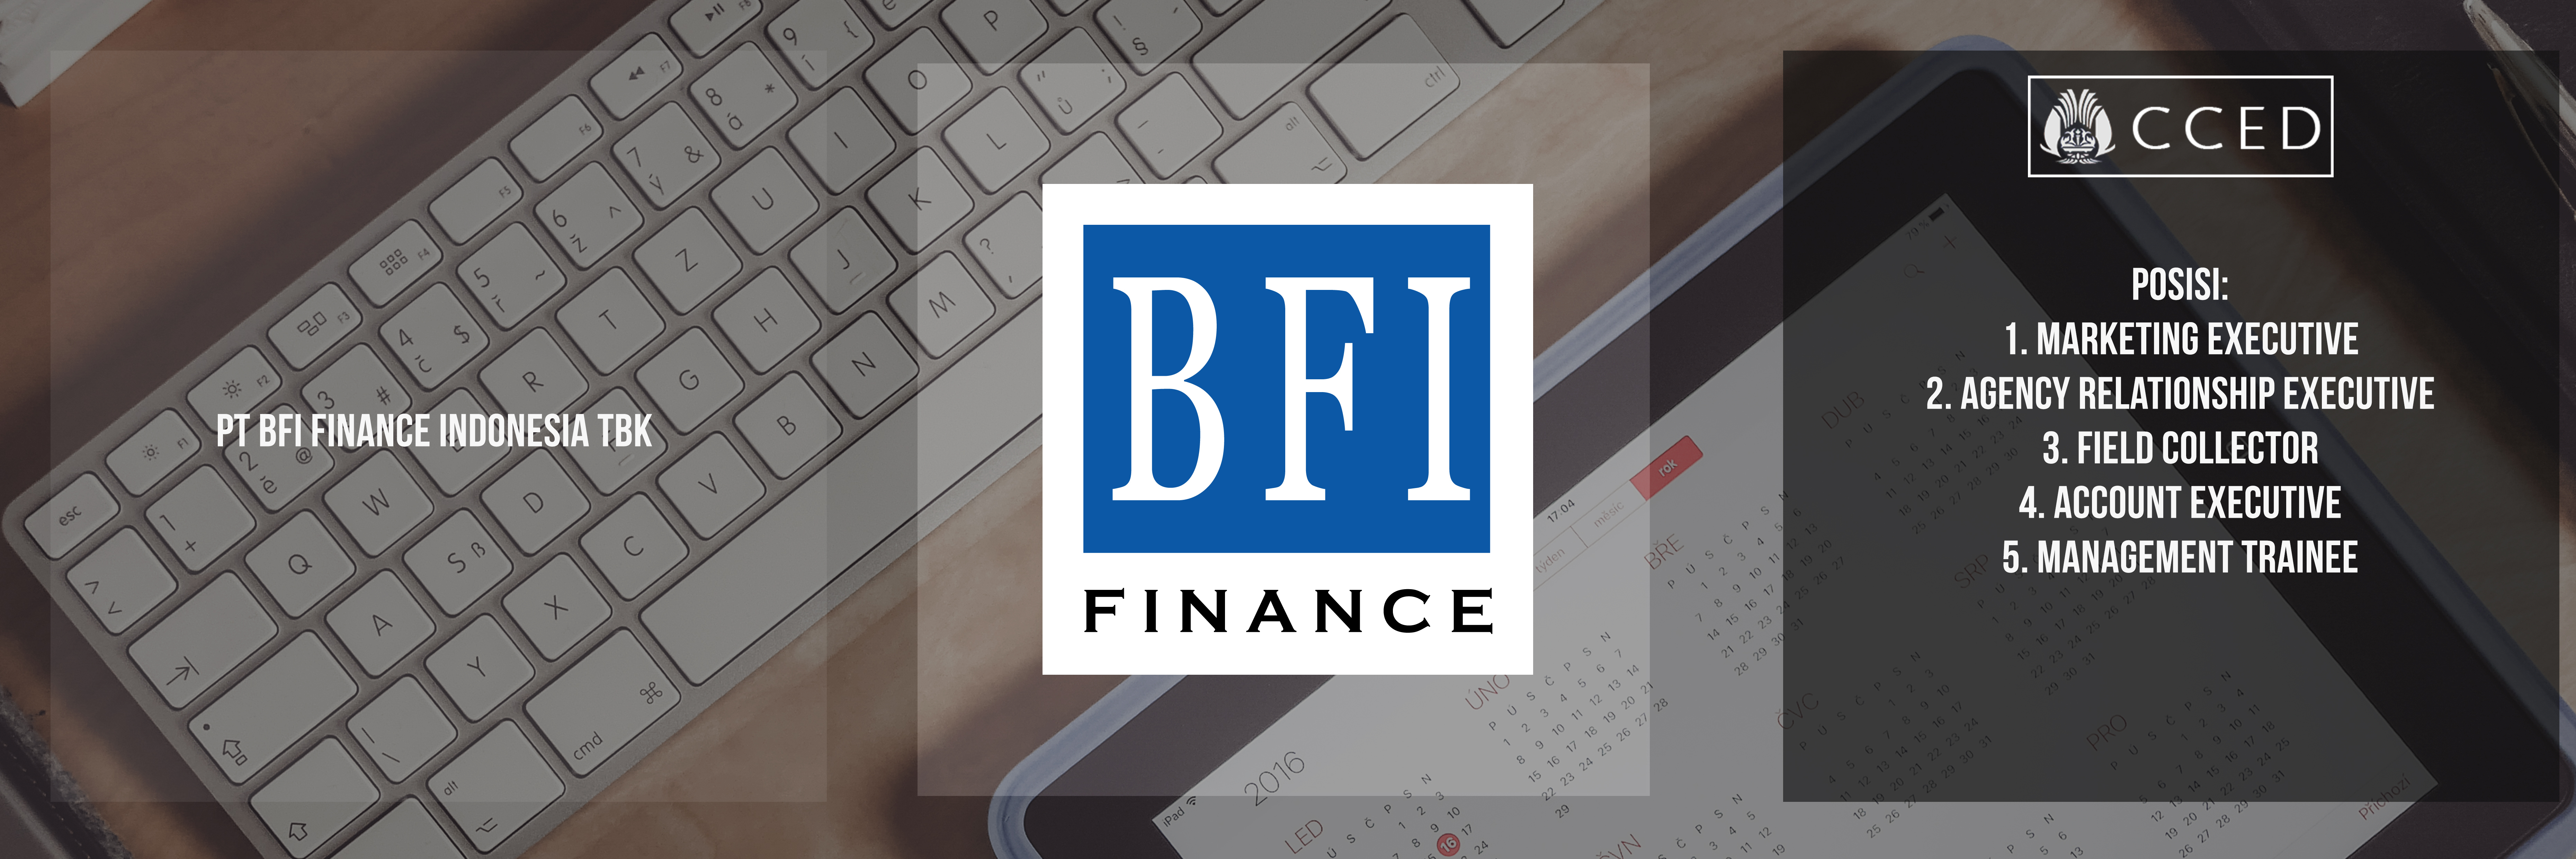 depan-pt-bfi-finance-indonesia-tbk